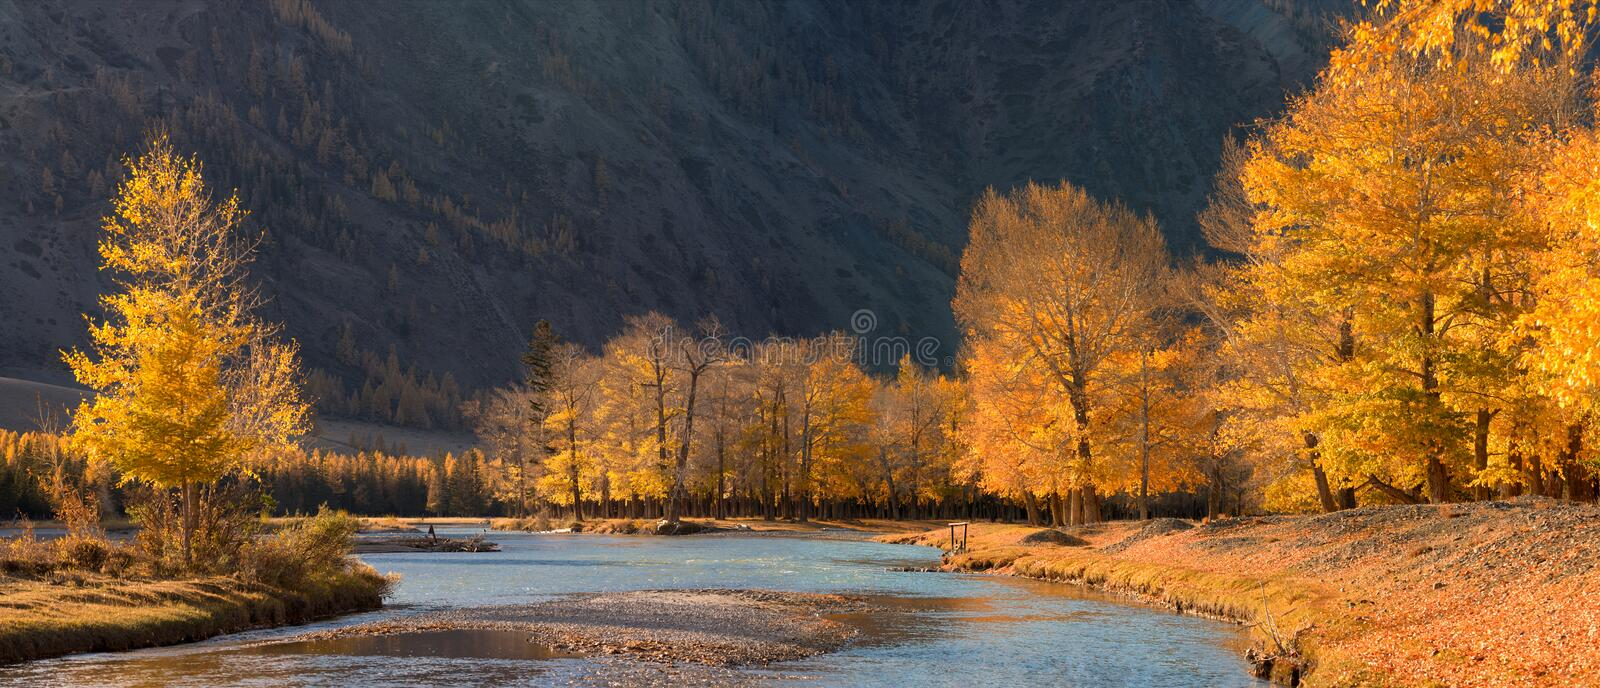 A beautiful autumn mountain landscape with sunlit poplars and blue river. Autumn forest with fallen leaves. Autumn in mountains. Autumn landscape with trees in stock photos